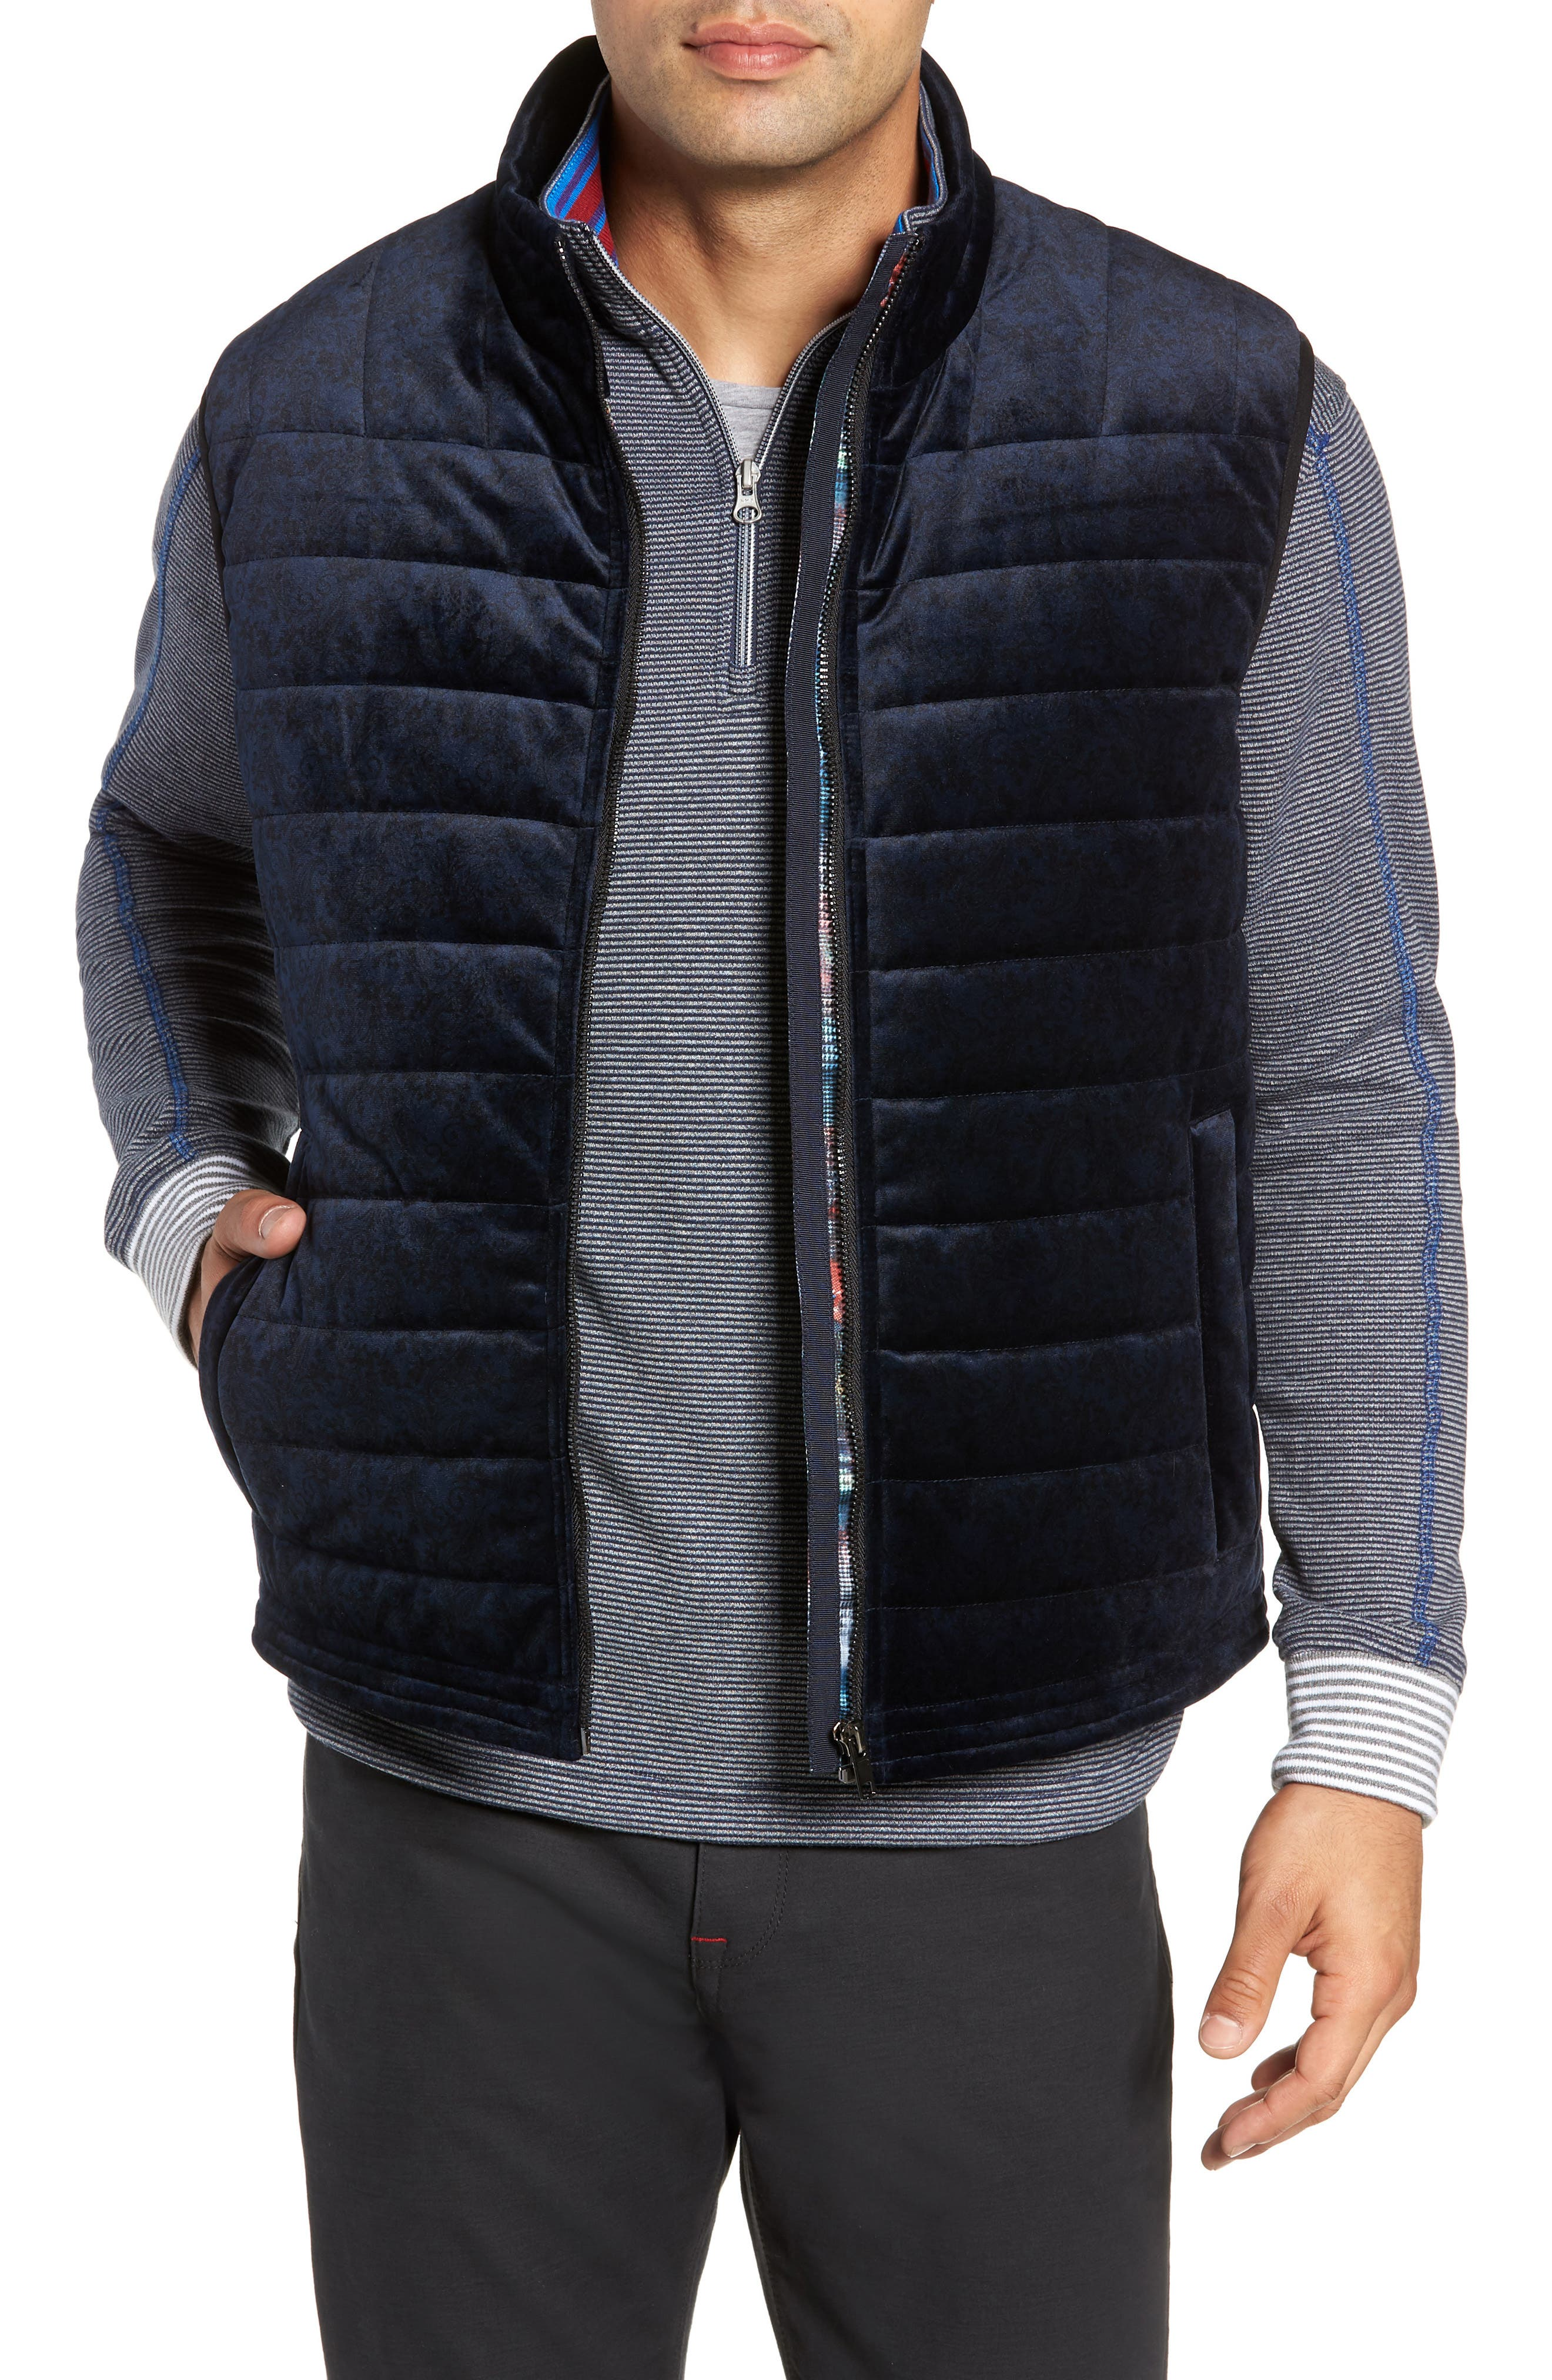 Guiffery Classic Fit Quilted Vest,                             Main thumbnail 1, color,                             NAVY